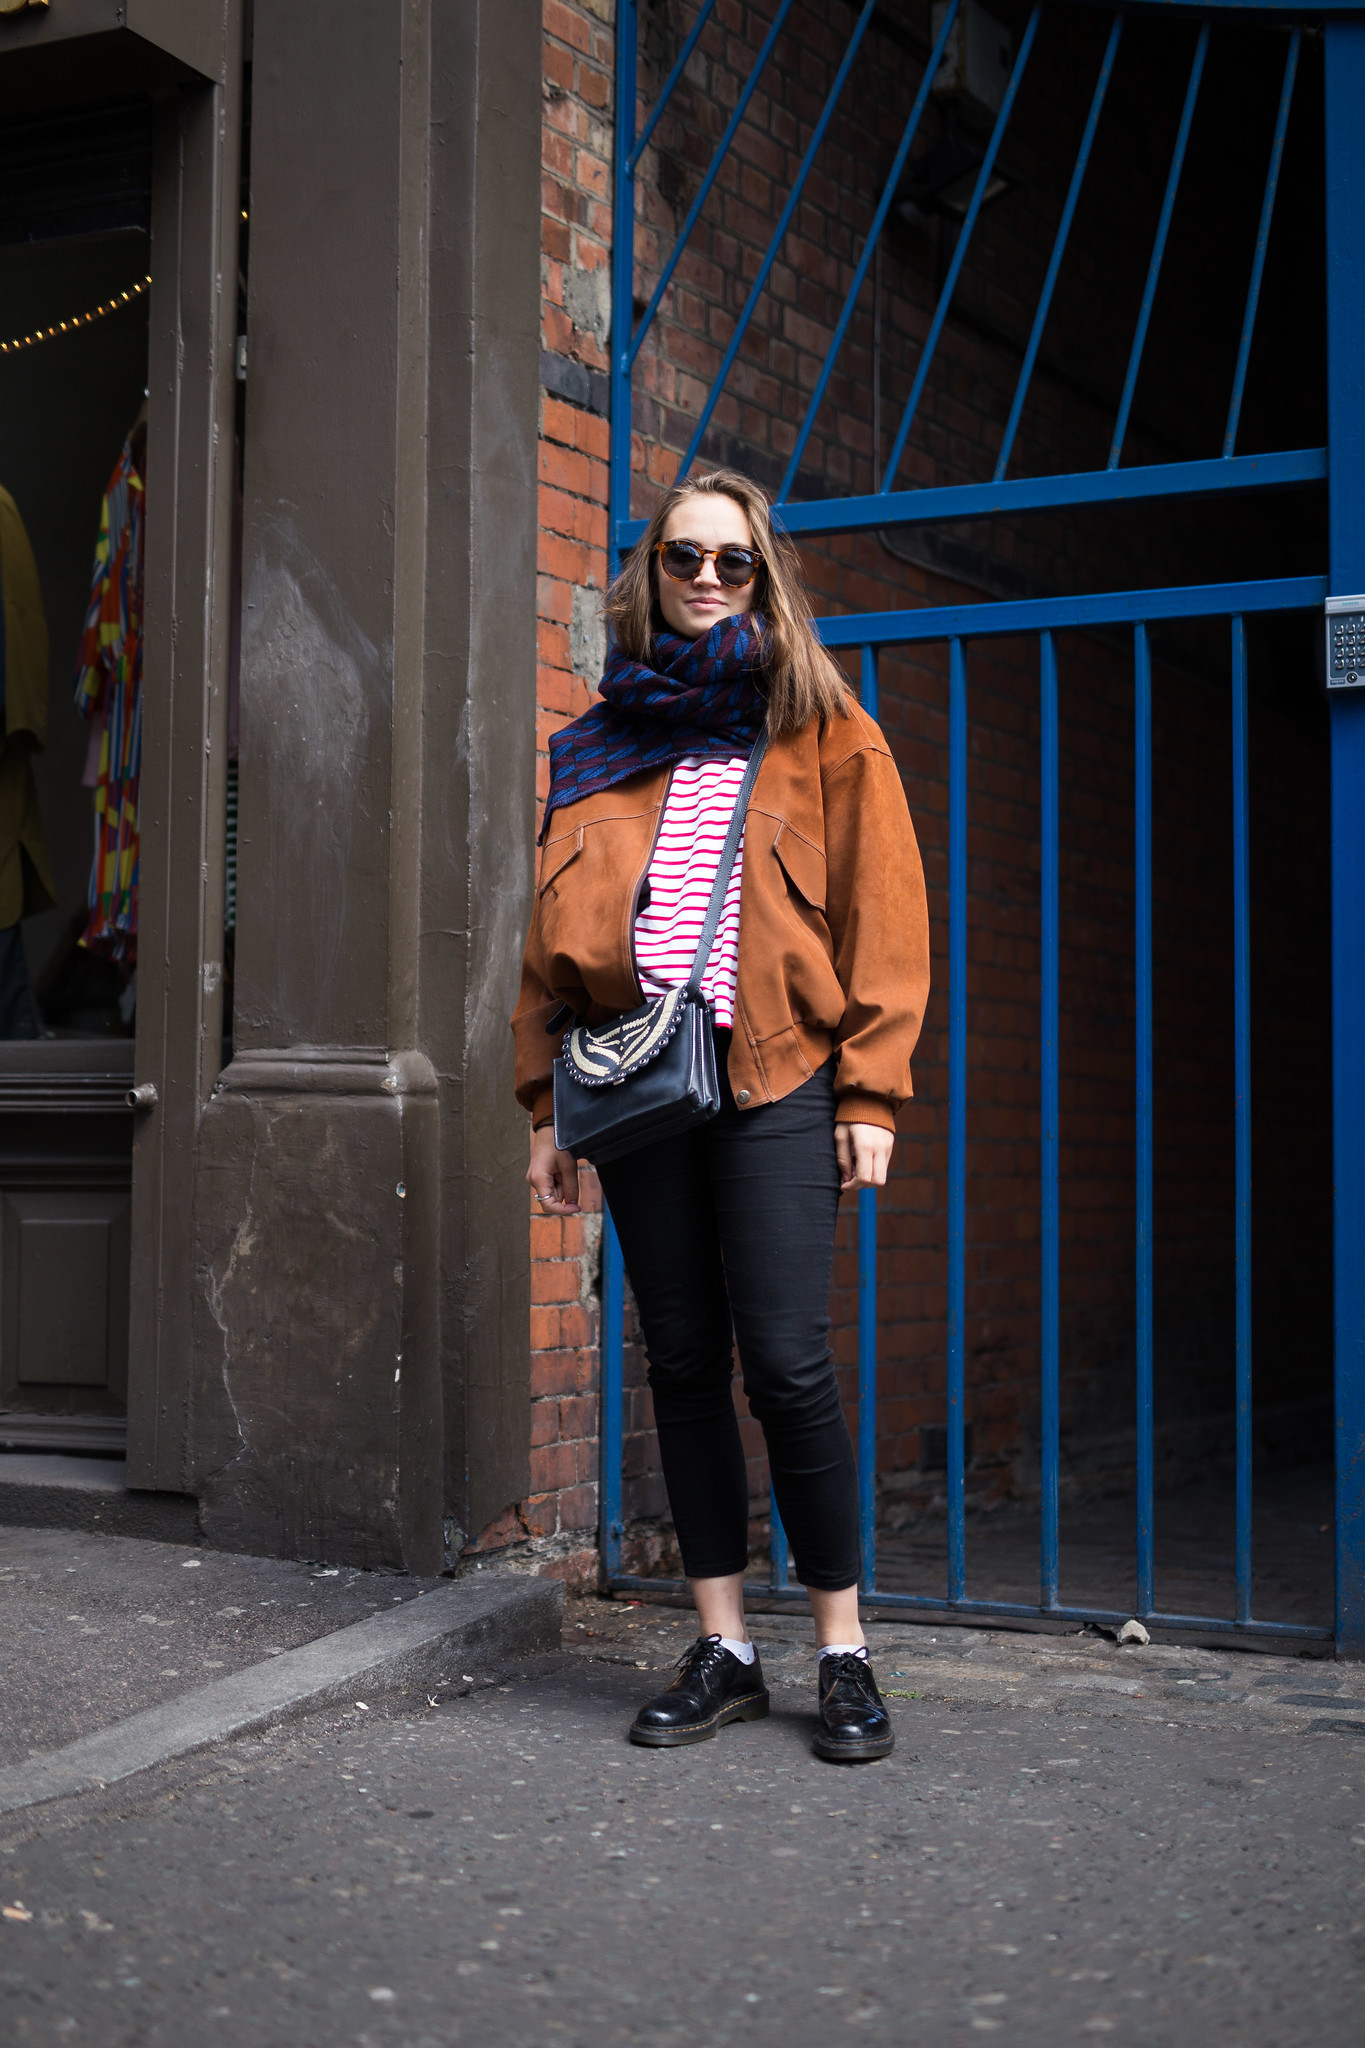 Street Style - Florence, Kingsland Road